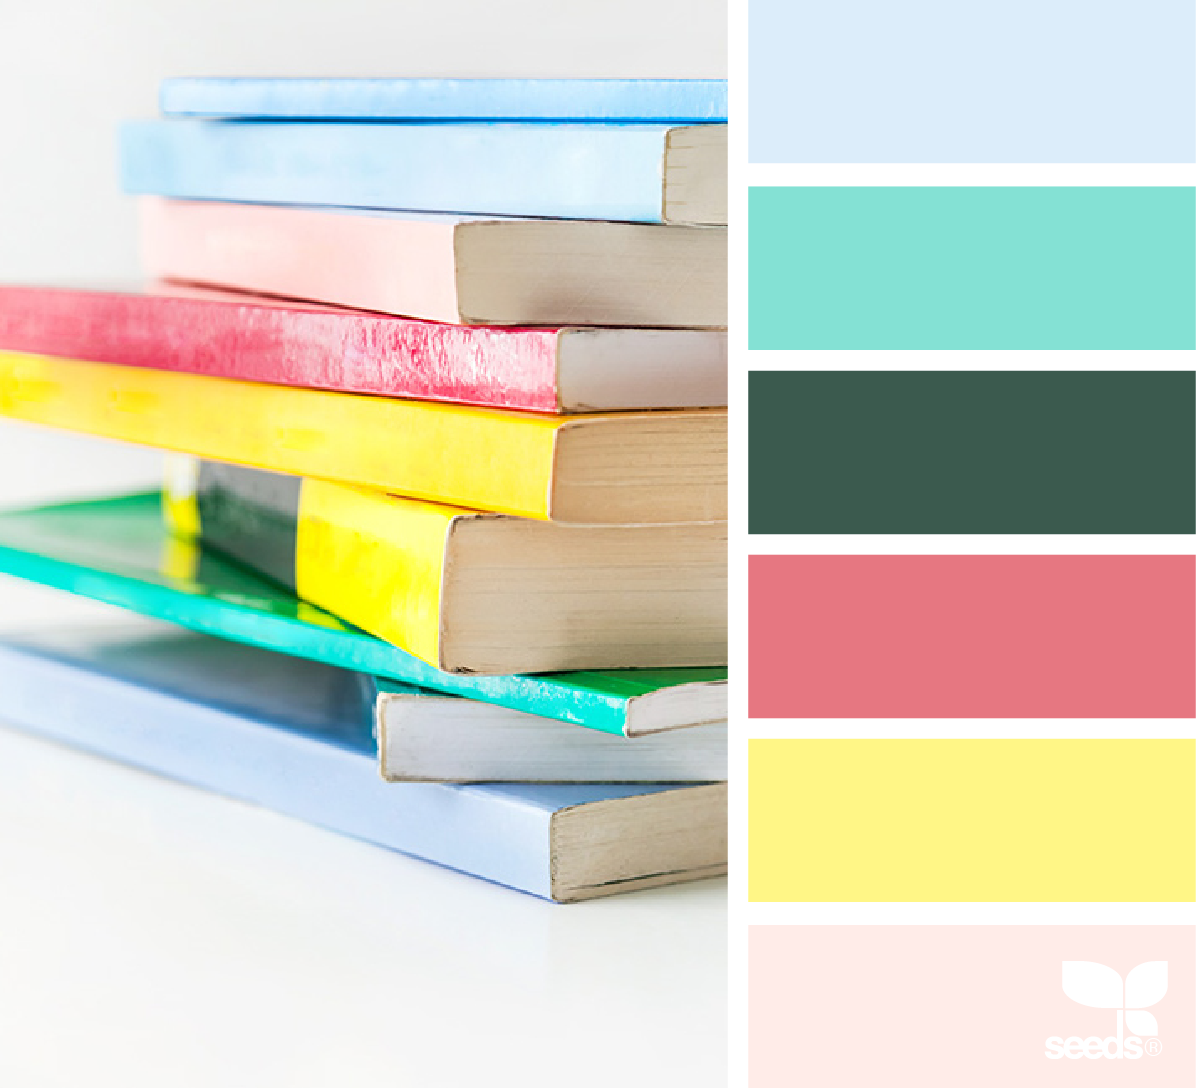 Book color palette - Color Palette Blue Green Red Yellow Light Pink Color Scheme Color Inspiration Today S Inspiration Image For Color Book Is By